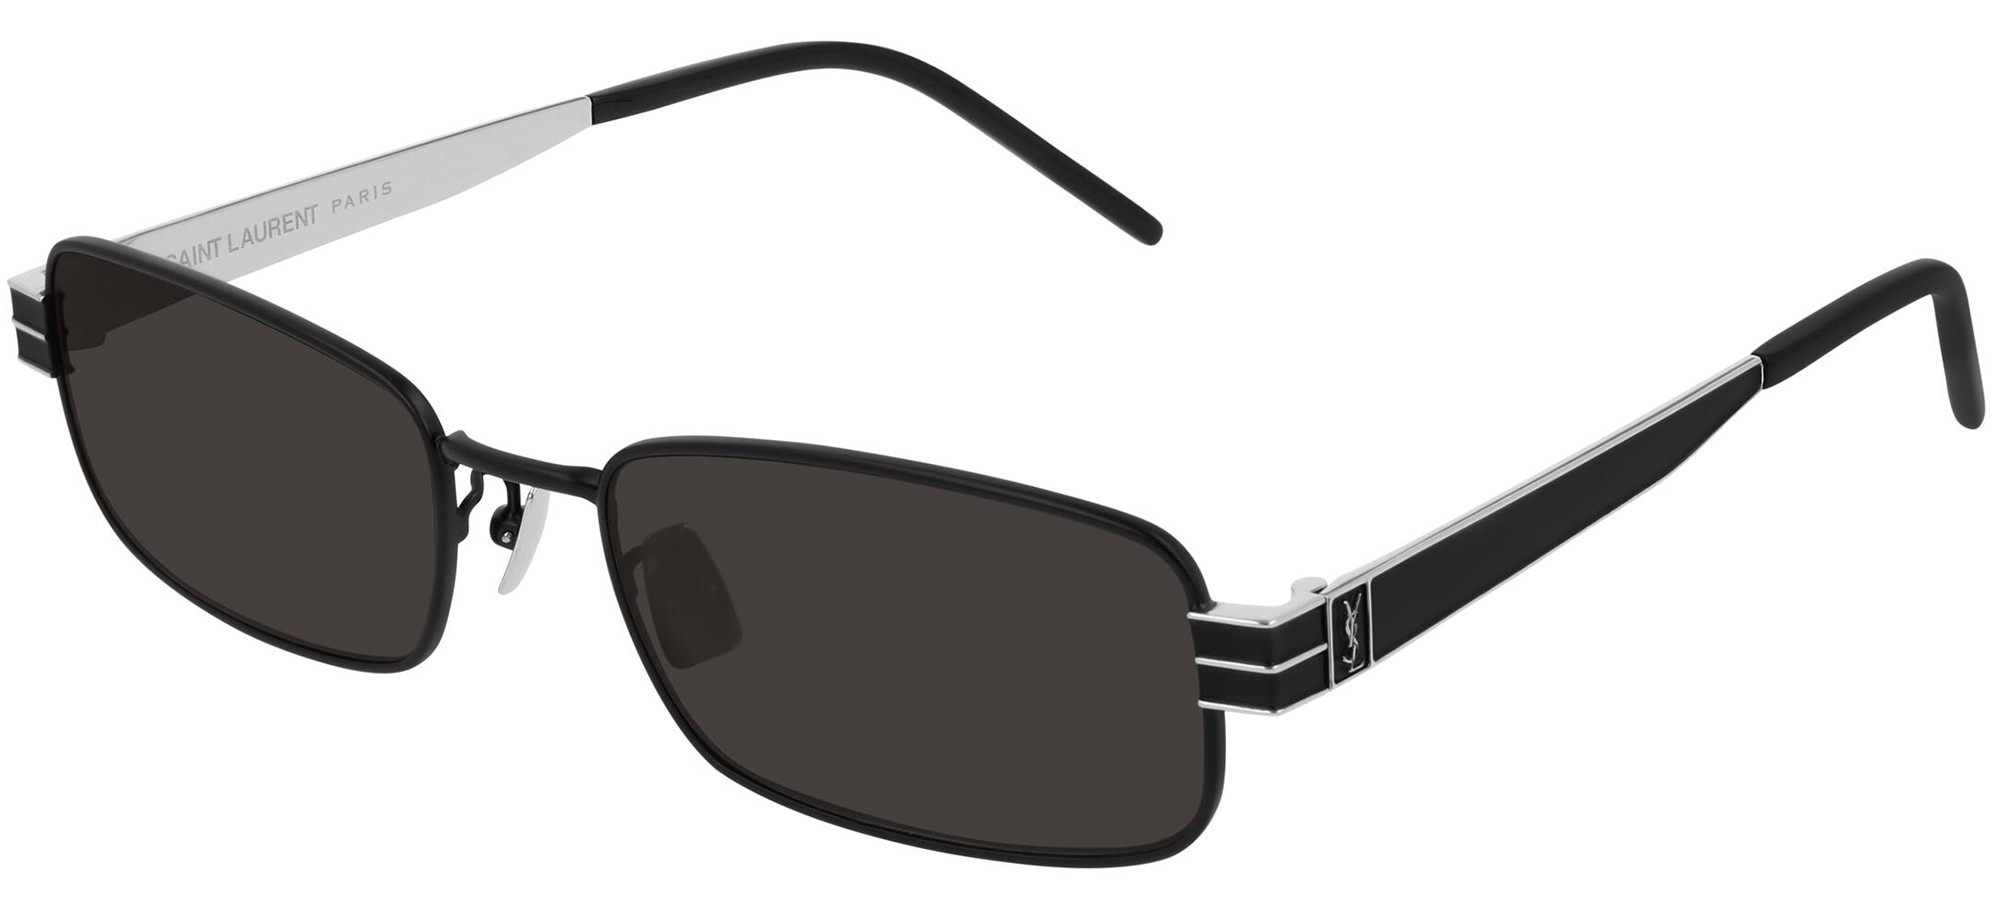 Saint Laurent SL M49